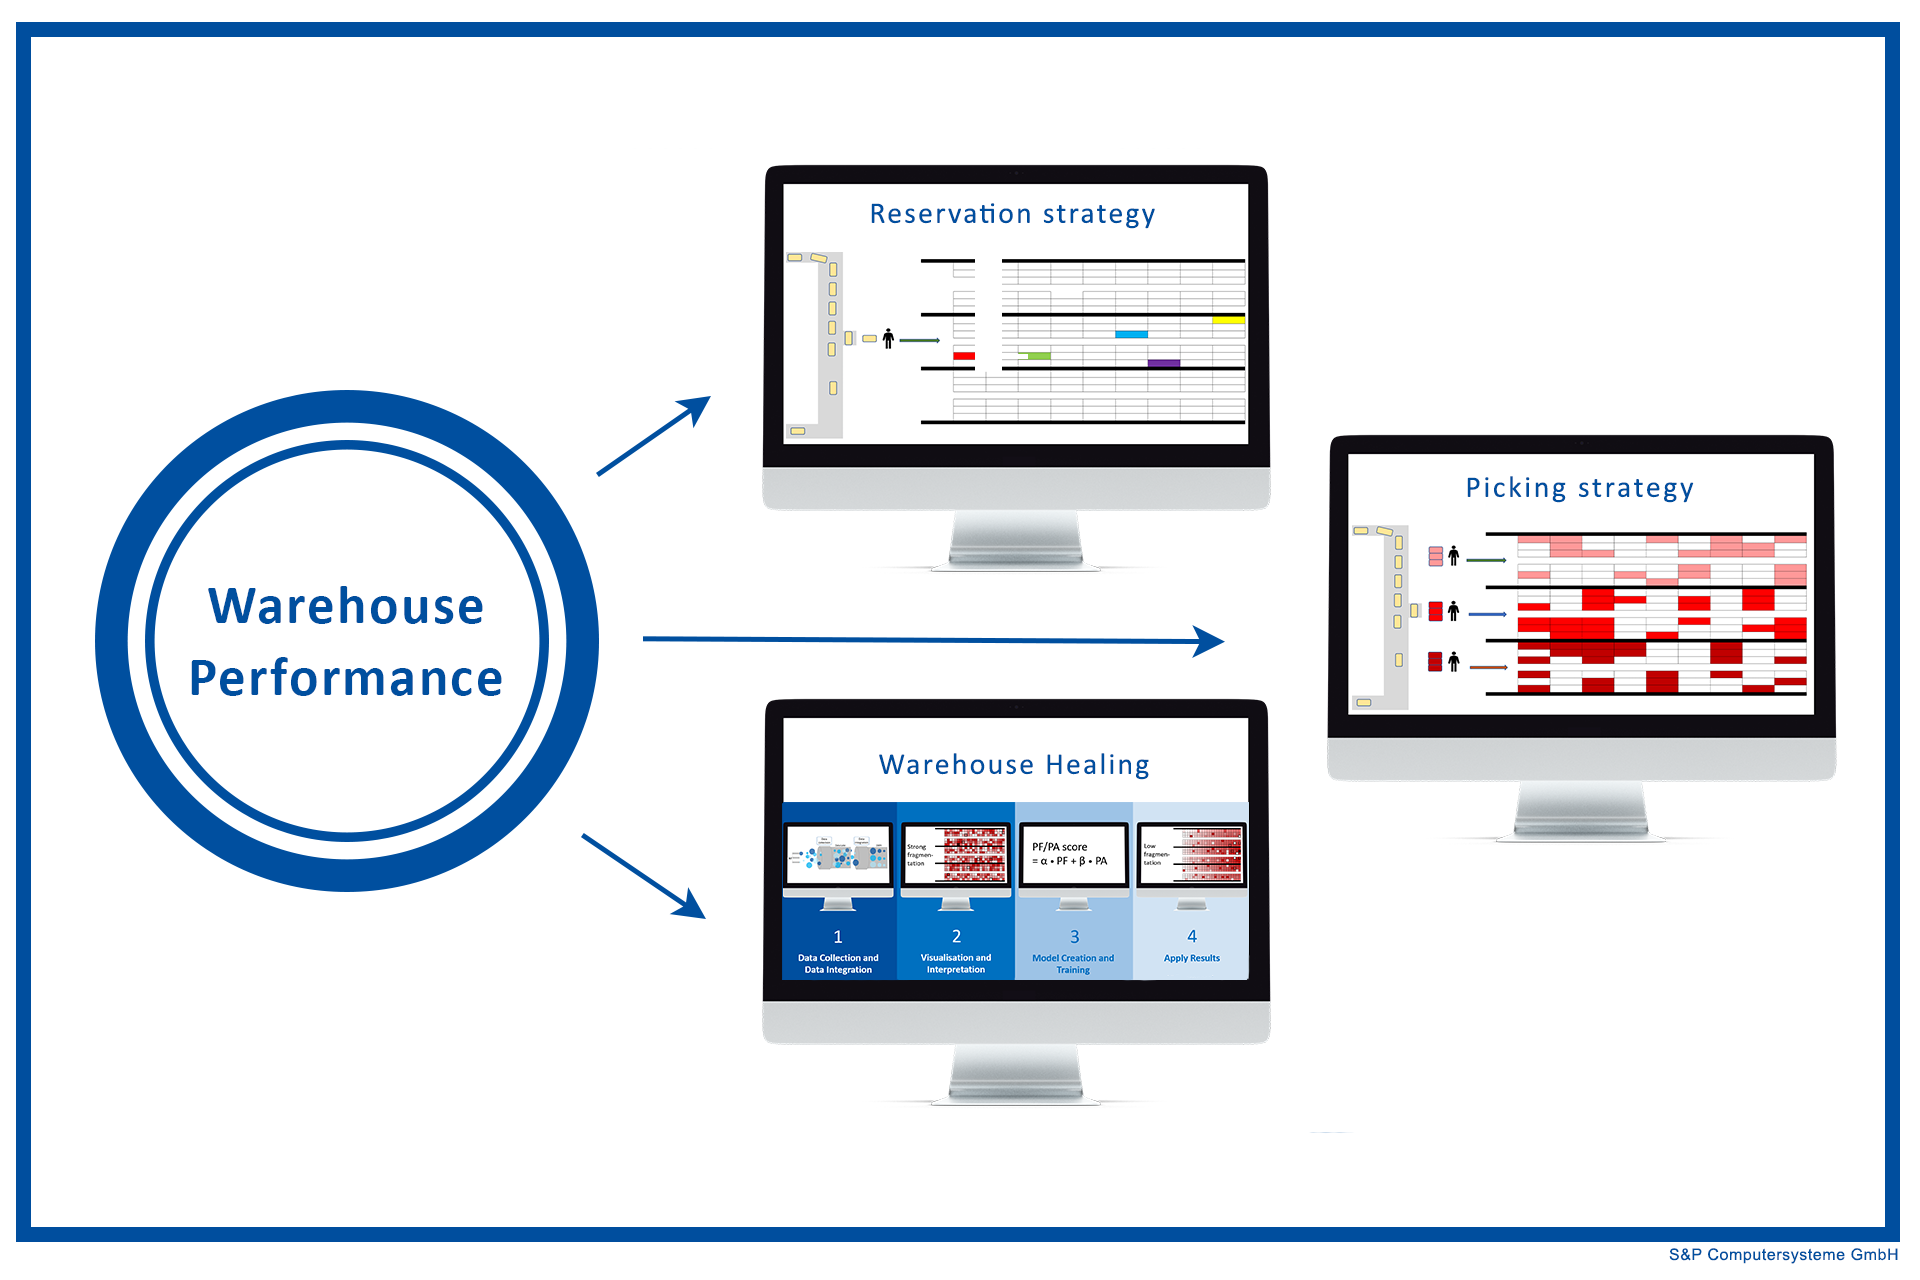 Warehouse Performance: Discover and use hidden potential in the warehouse through the consistent use of data! (Part 1/4)